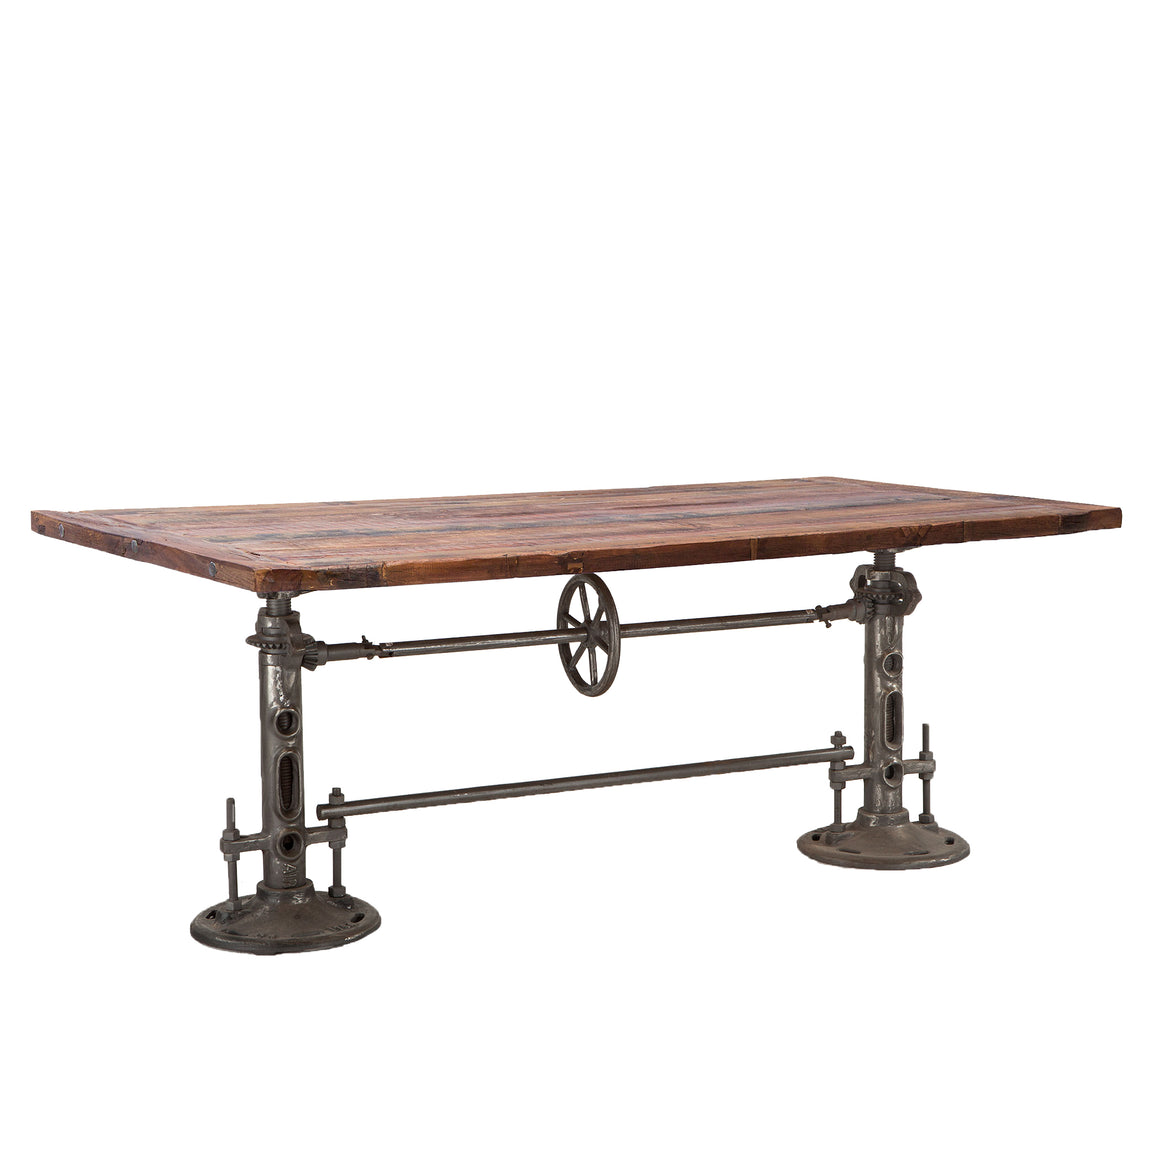 "Artezia 82"" Dining Table"